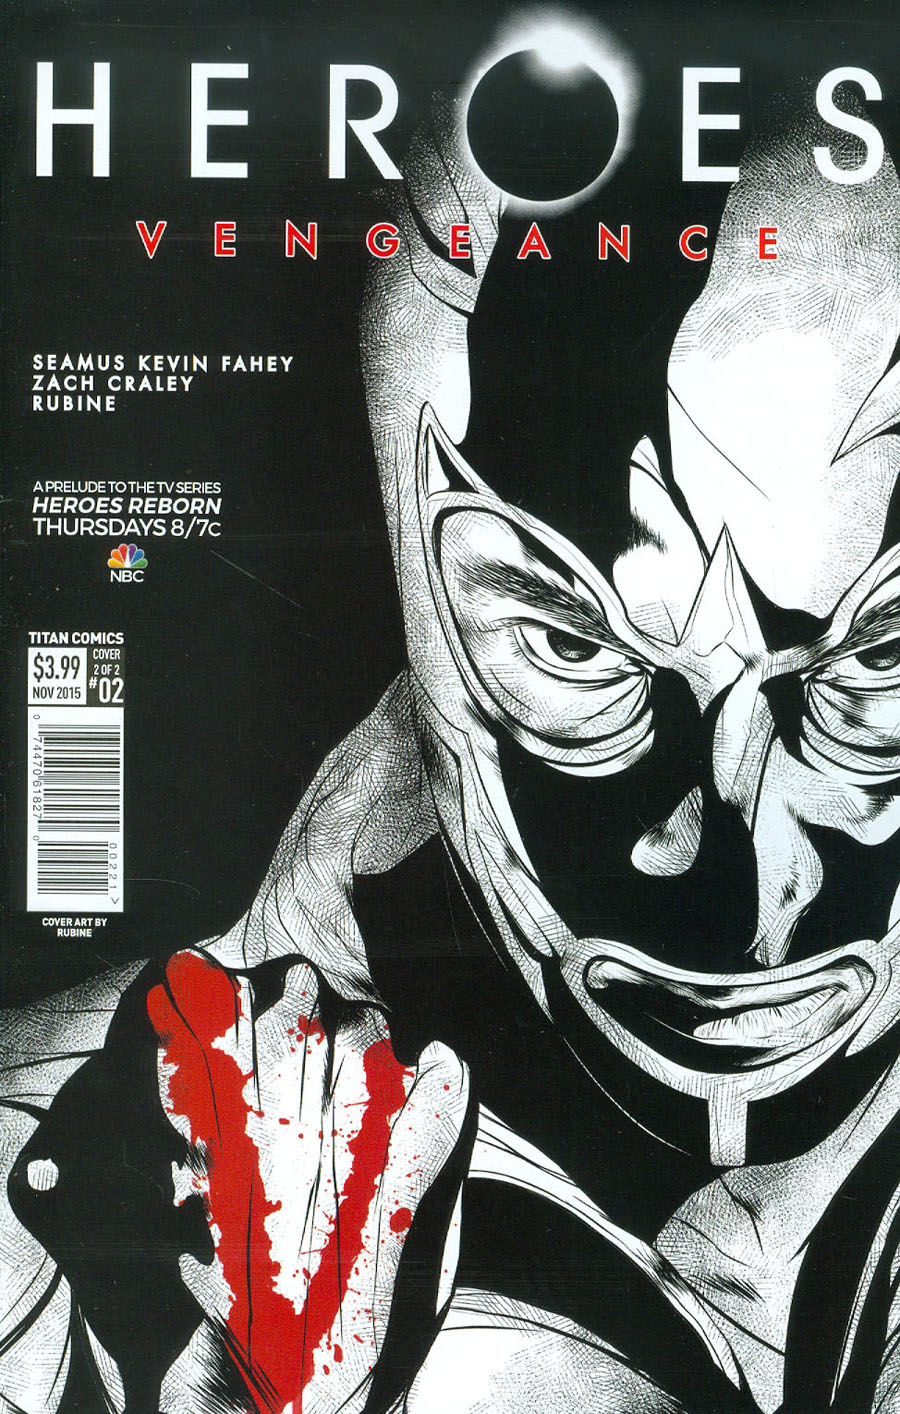 Heroes Vengeance #2 Cover B Variant Rubine Subscription Cover